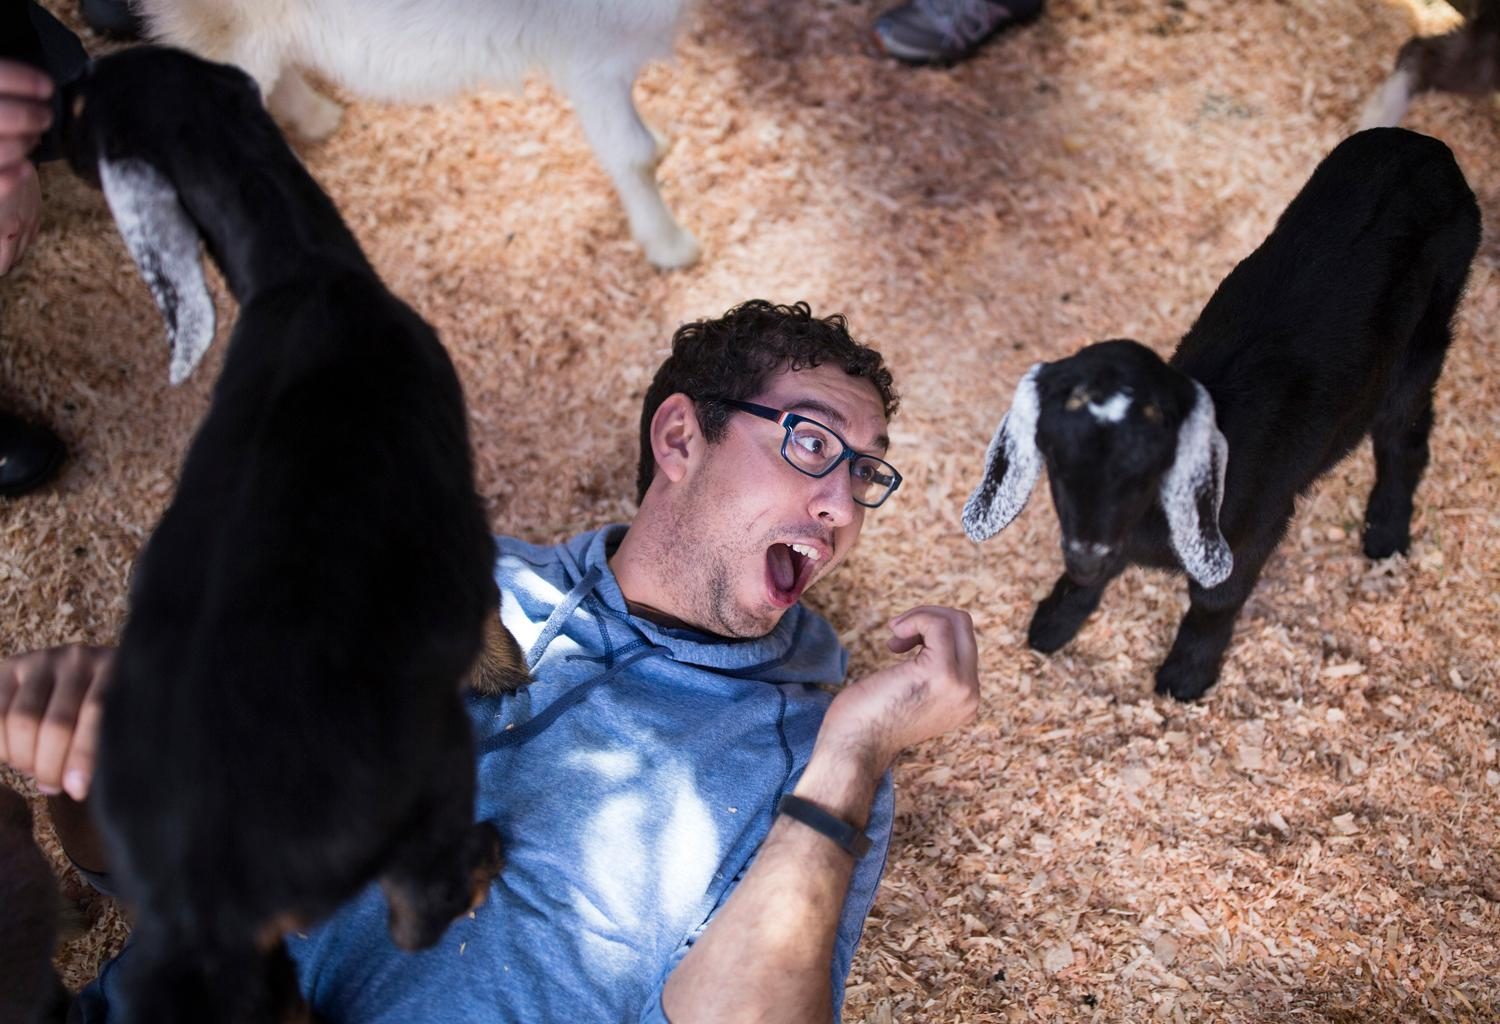 Attendees sip locally craft beer and pet baby rescue goats at the second annual Baby Goats and Brews fundraiser at Reuben's Brews in Ballard. $1 from every beer, growler, and flight sold goes to Puget Sound Goat Rescue. (Sy Bean / Seattle Refined)